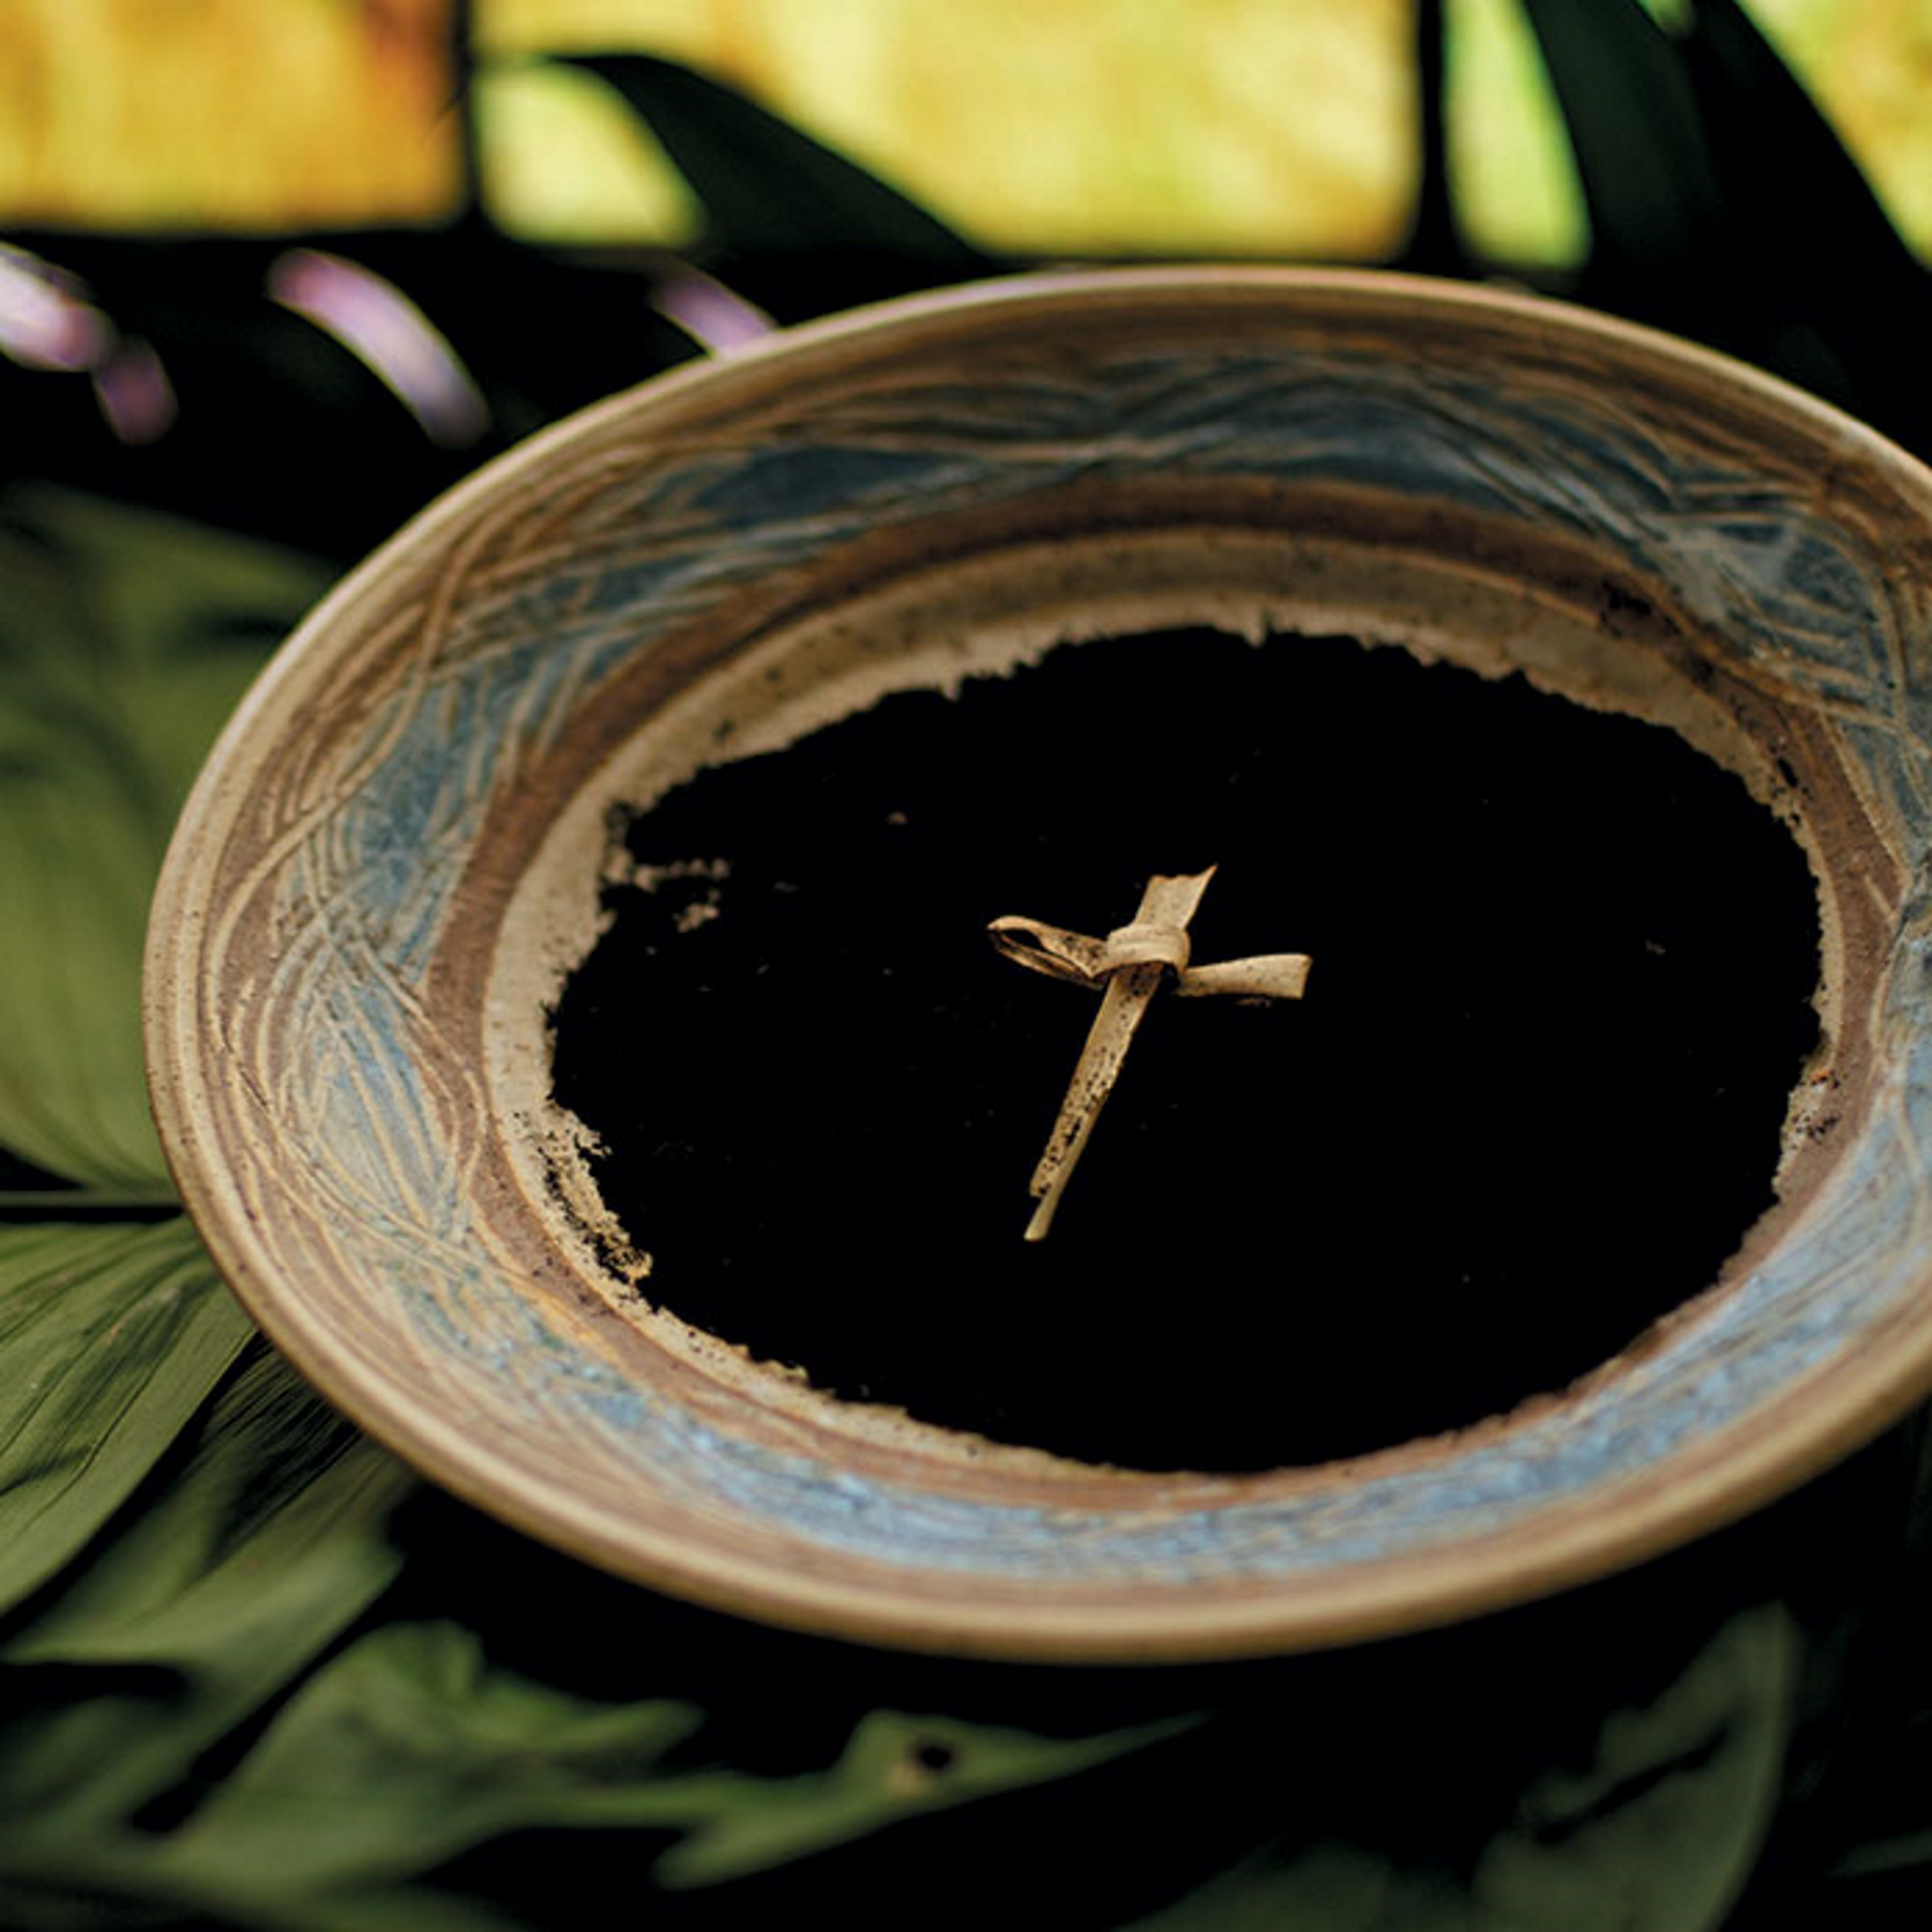 Special Report: The 40 days of Lent